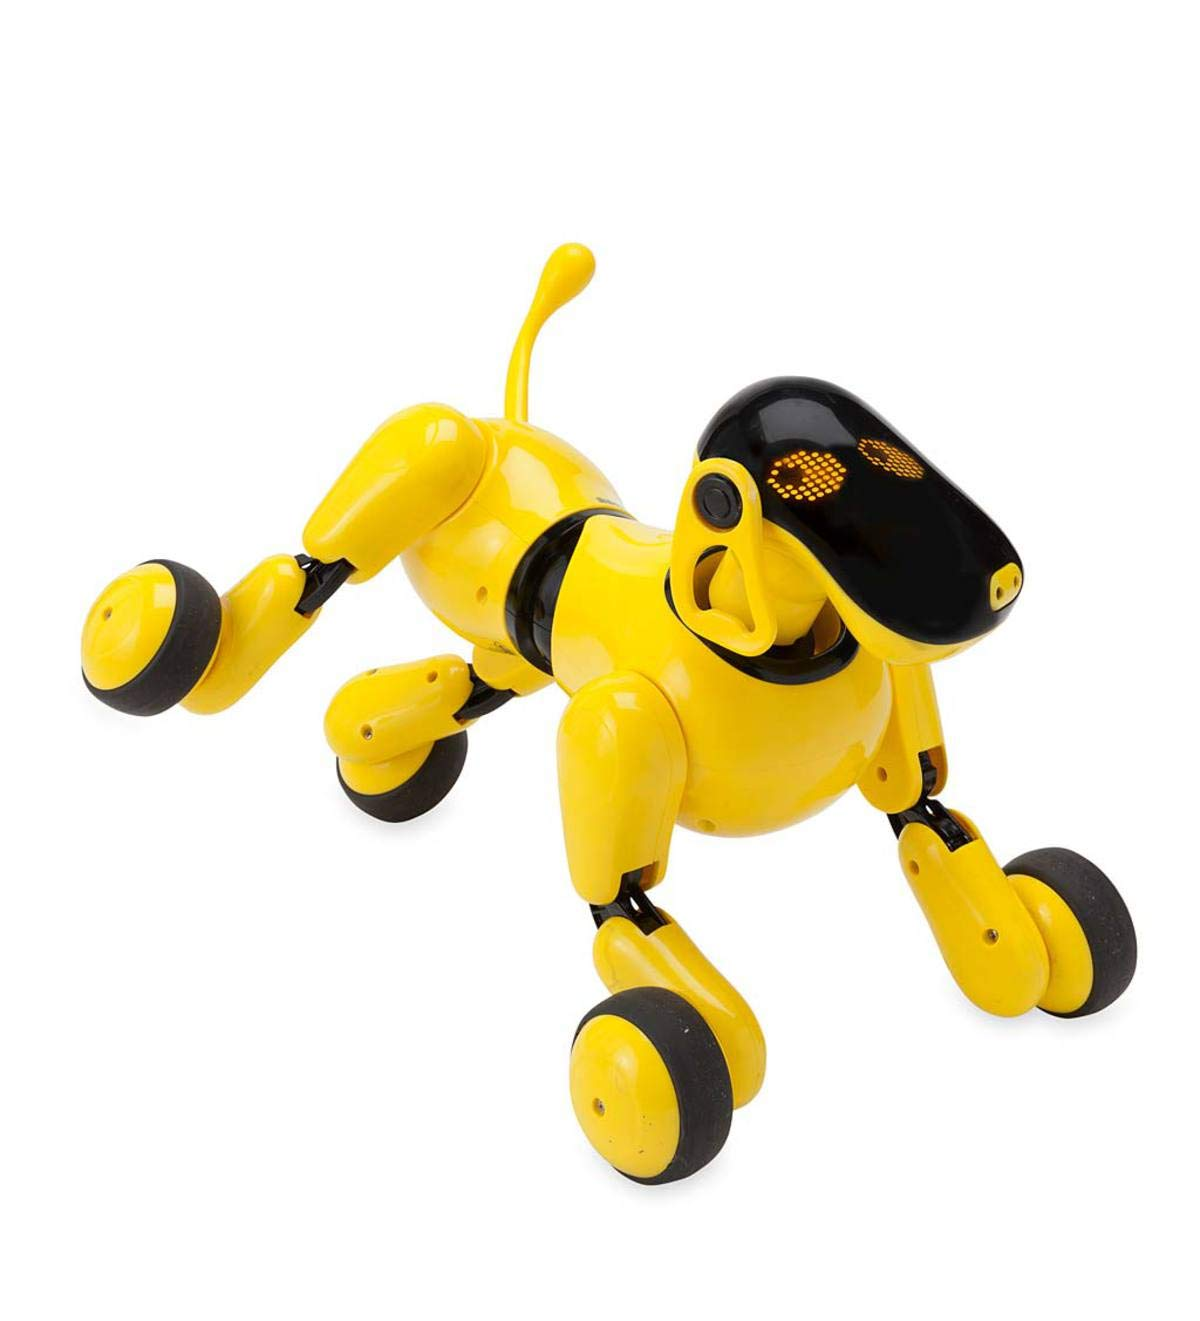 HearthSong Gizmo The Voice Controlled Robotic Dog - Electronic Pet Toy for Kids - 13 L x 5 W x 7'' H, Yellow by HearthSong (Image #4)